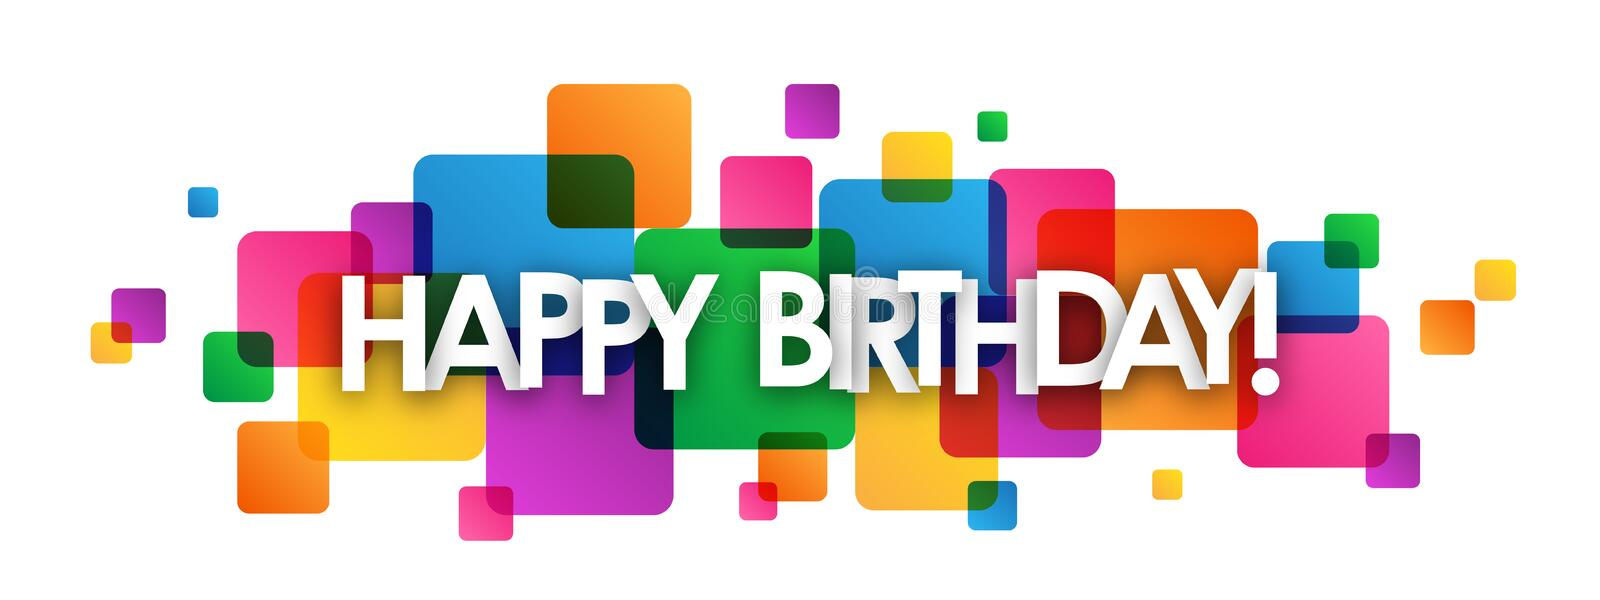 HAPPY BIRTHDAY! colorful overlapping squares banner vector illustration